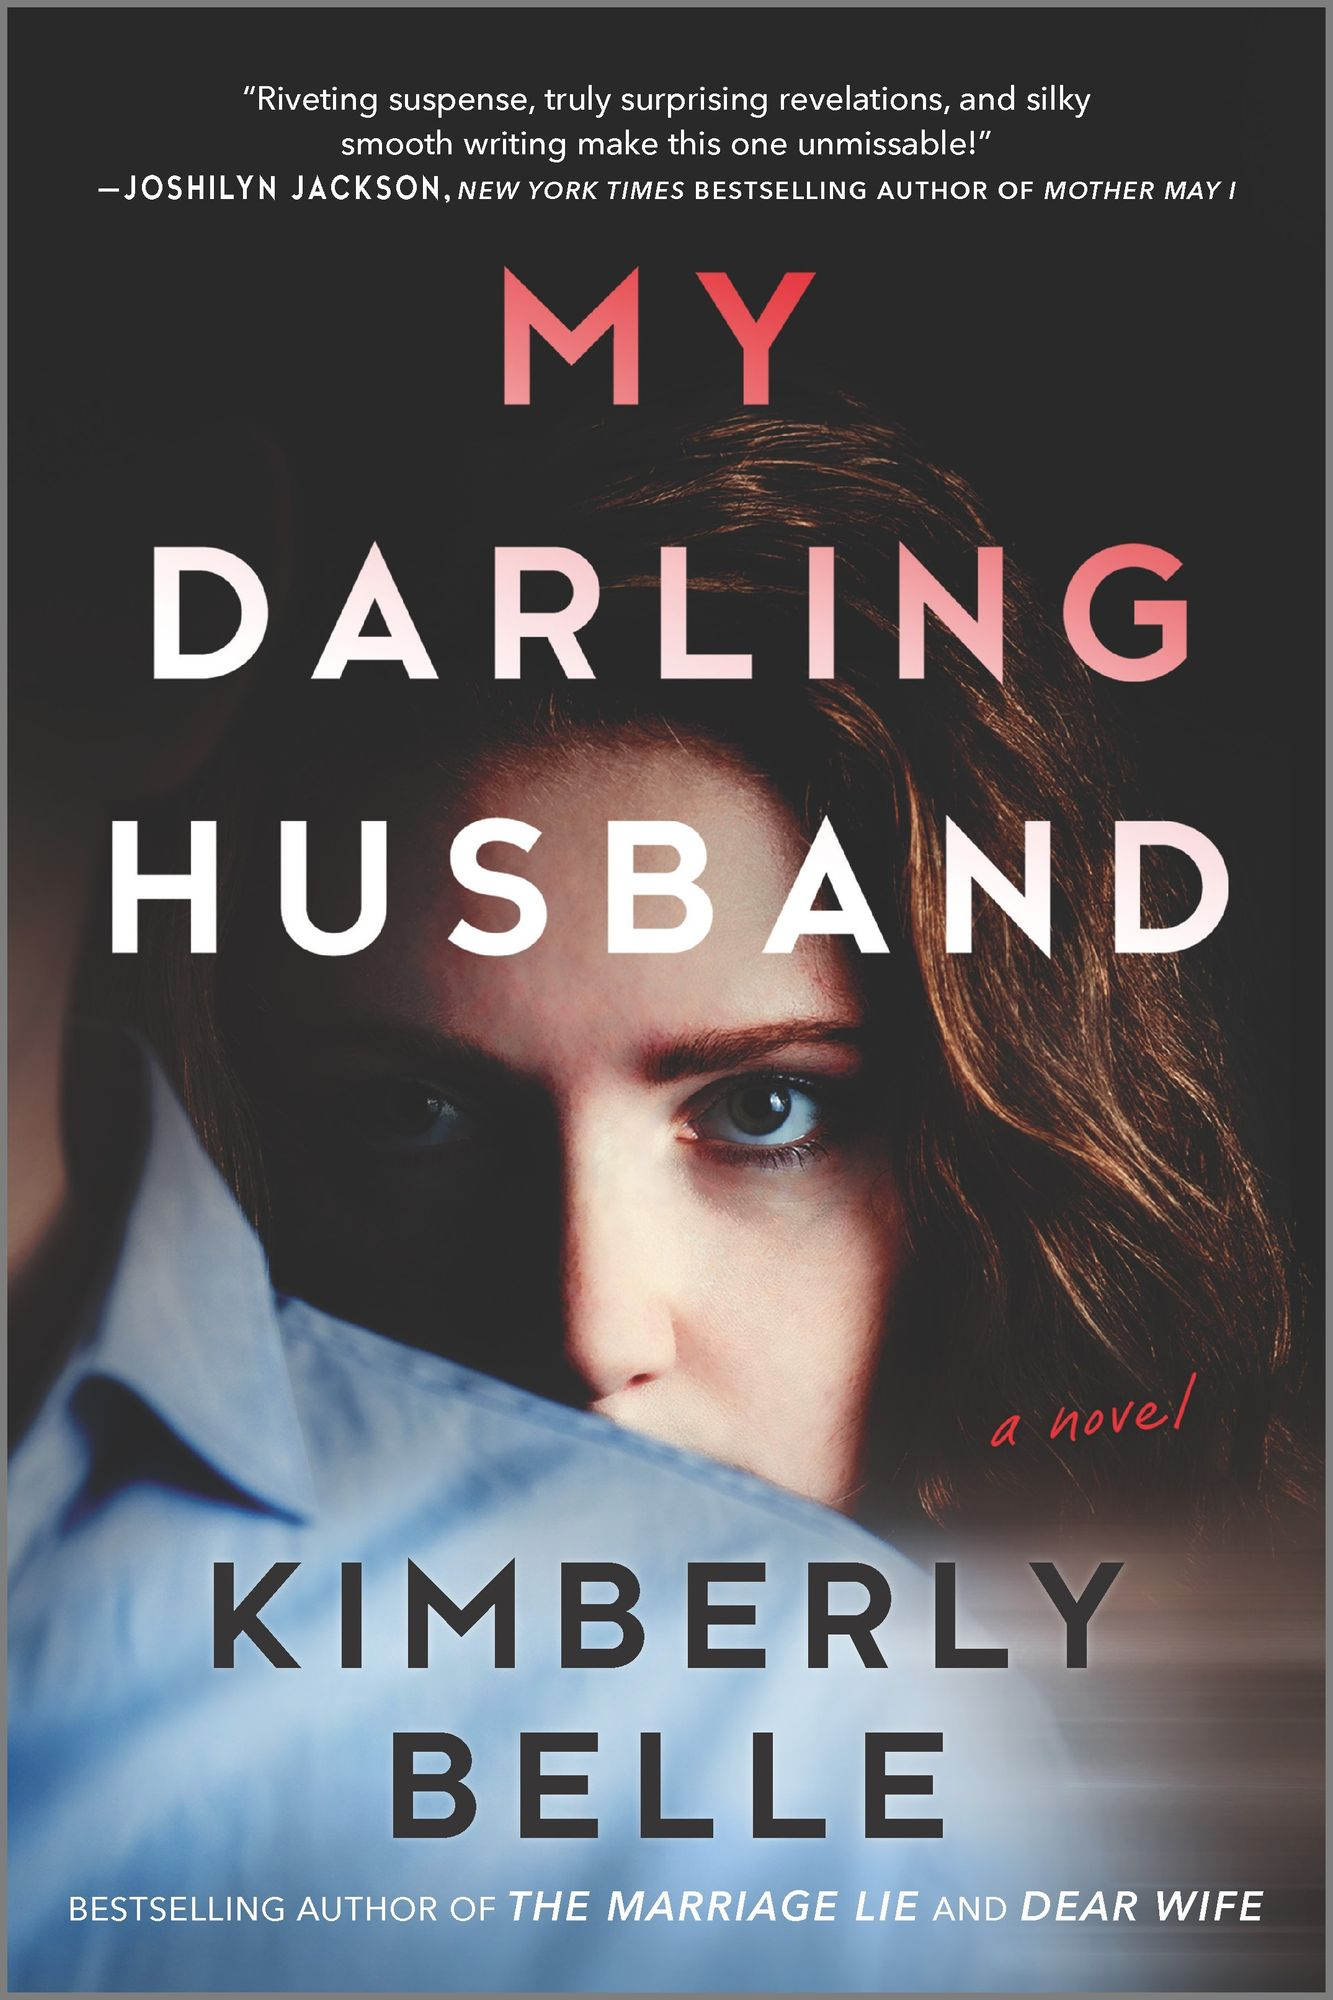 My Darling Husband by Kimberly Belle